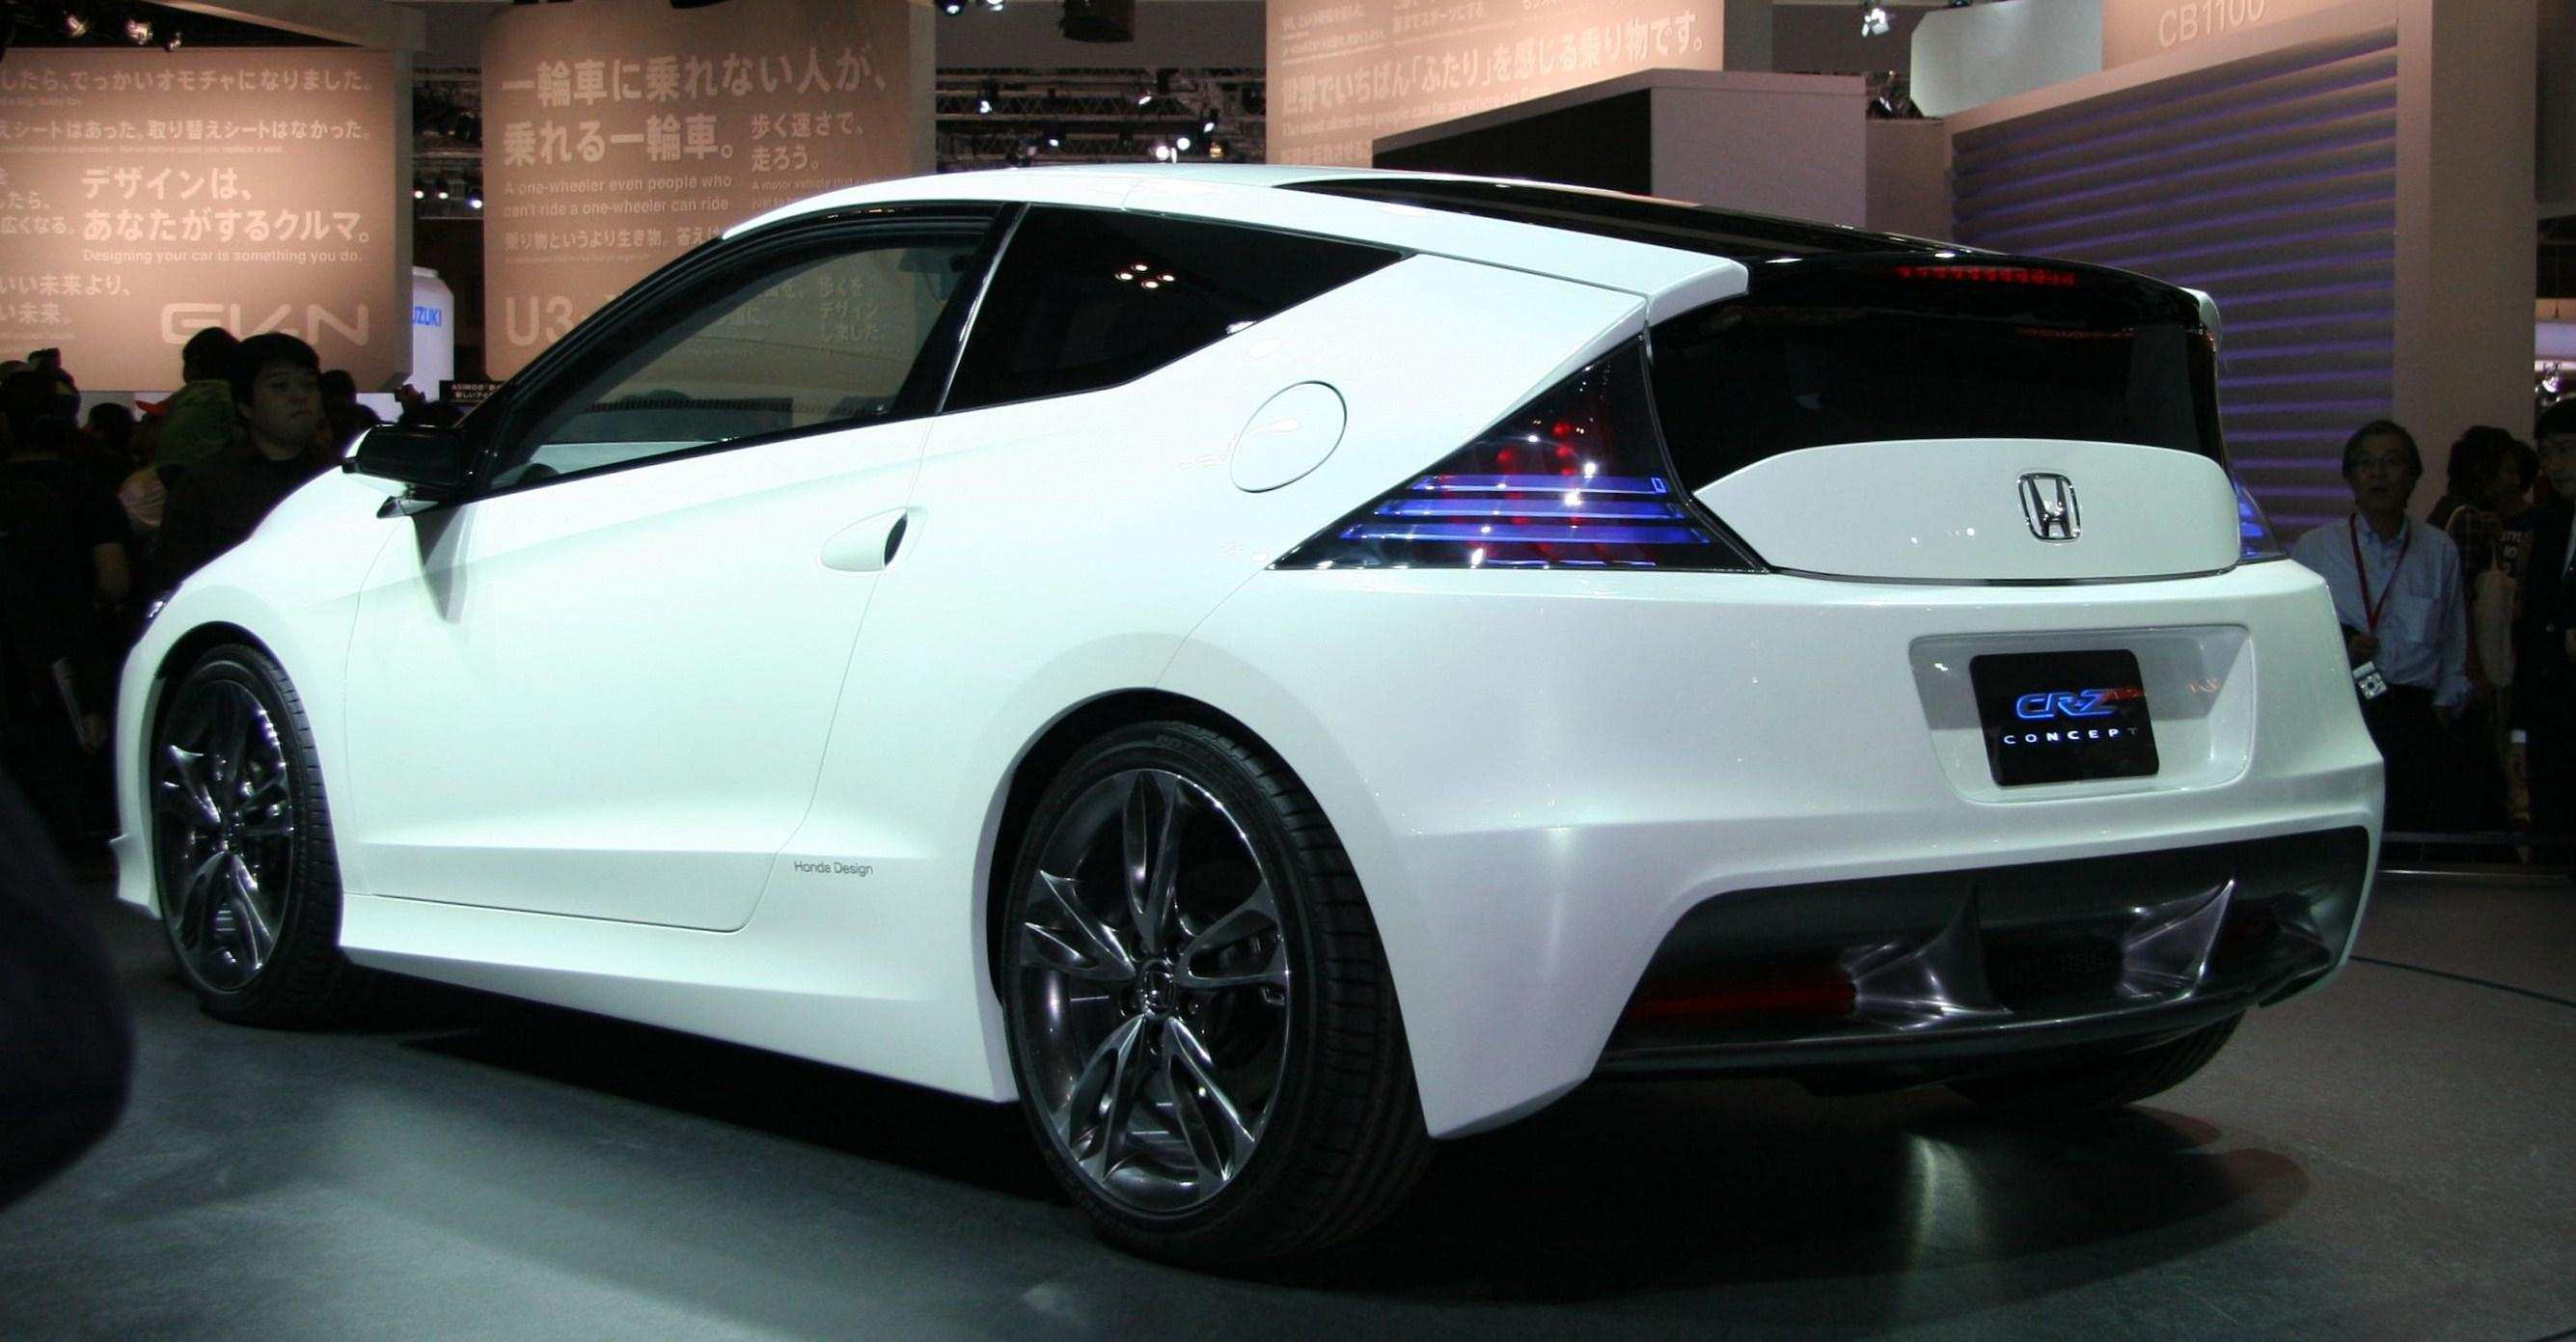 75 The Best 2019 Honda Cr Z Price And Release Date